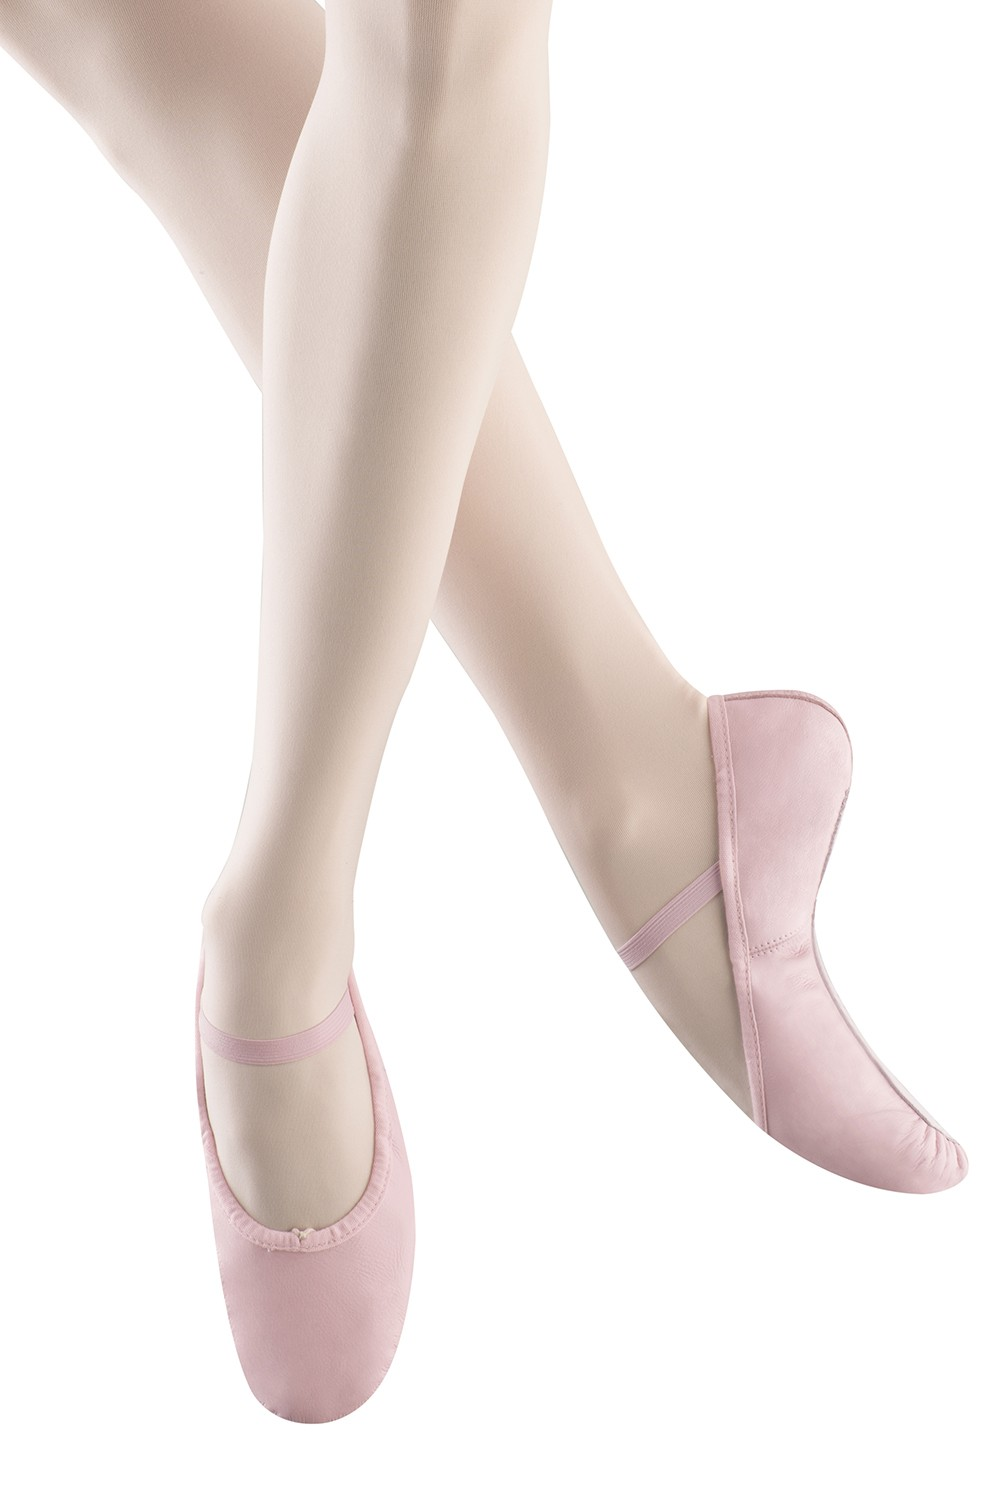 Bunnyhop Slipper Girl's Ballet Shoes